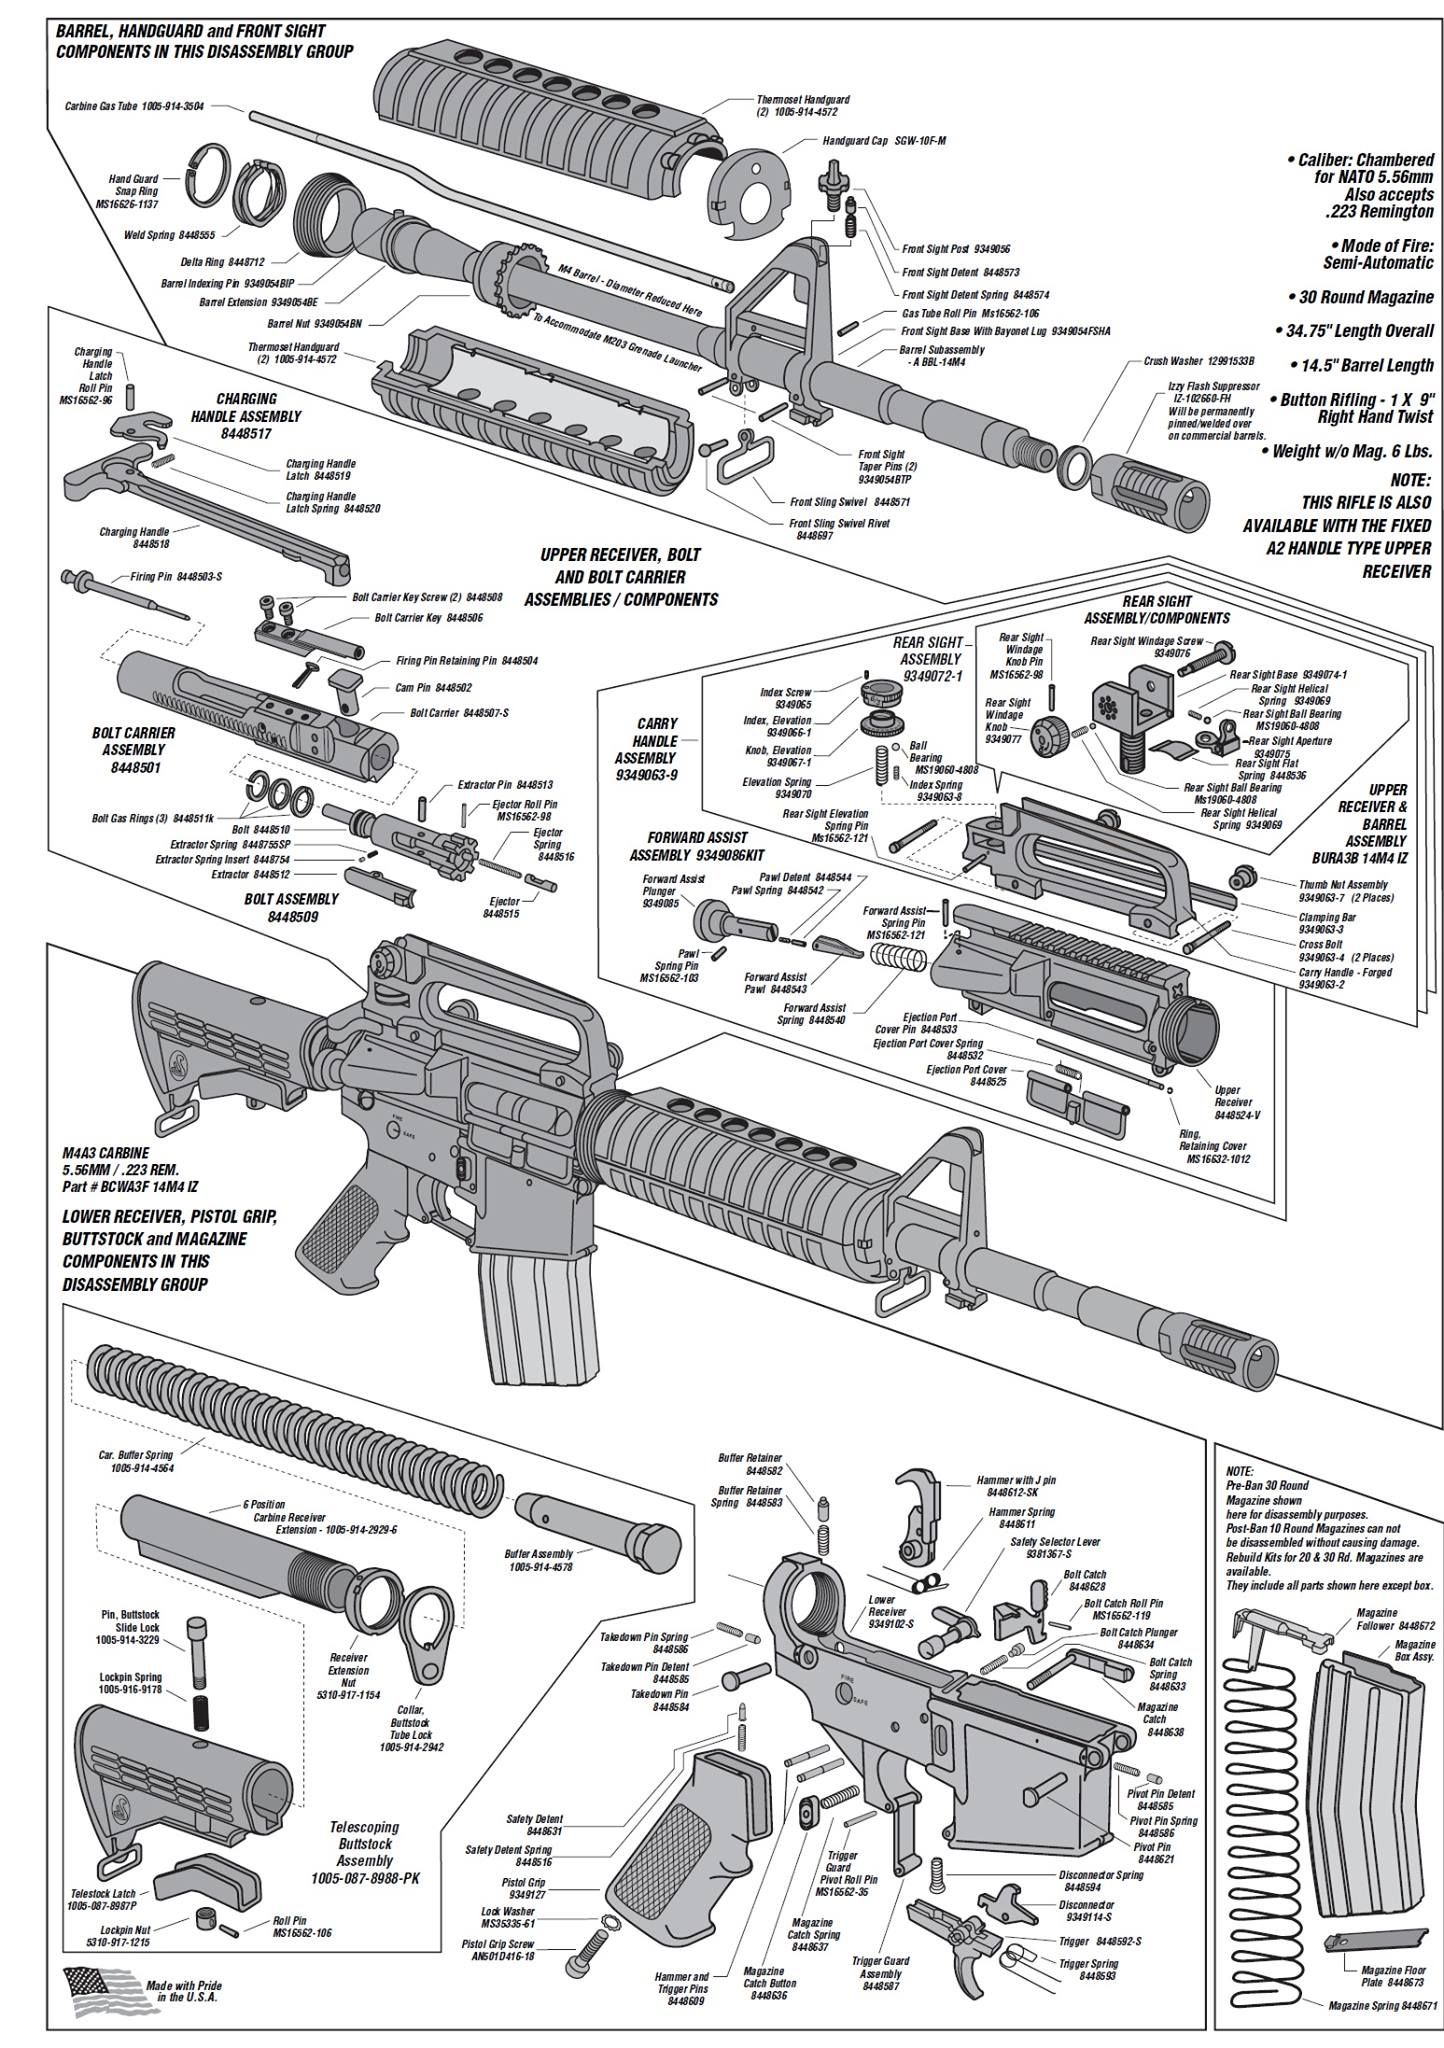 M16 Upper Receiver Assembly Diagram H4 Halogen Bulb Wiring Parts Breakdown Ar 15 Tactical Rifles Guns Firearms